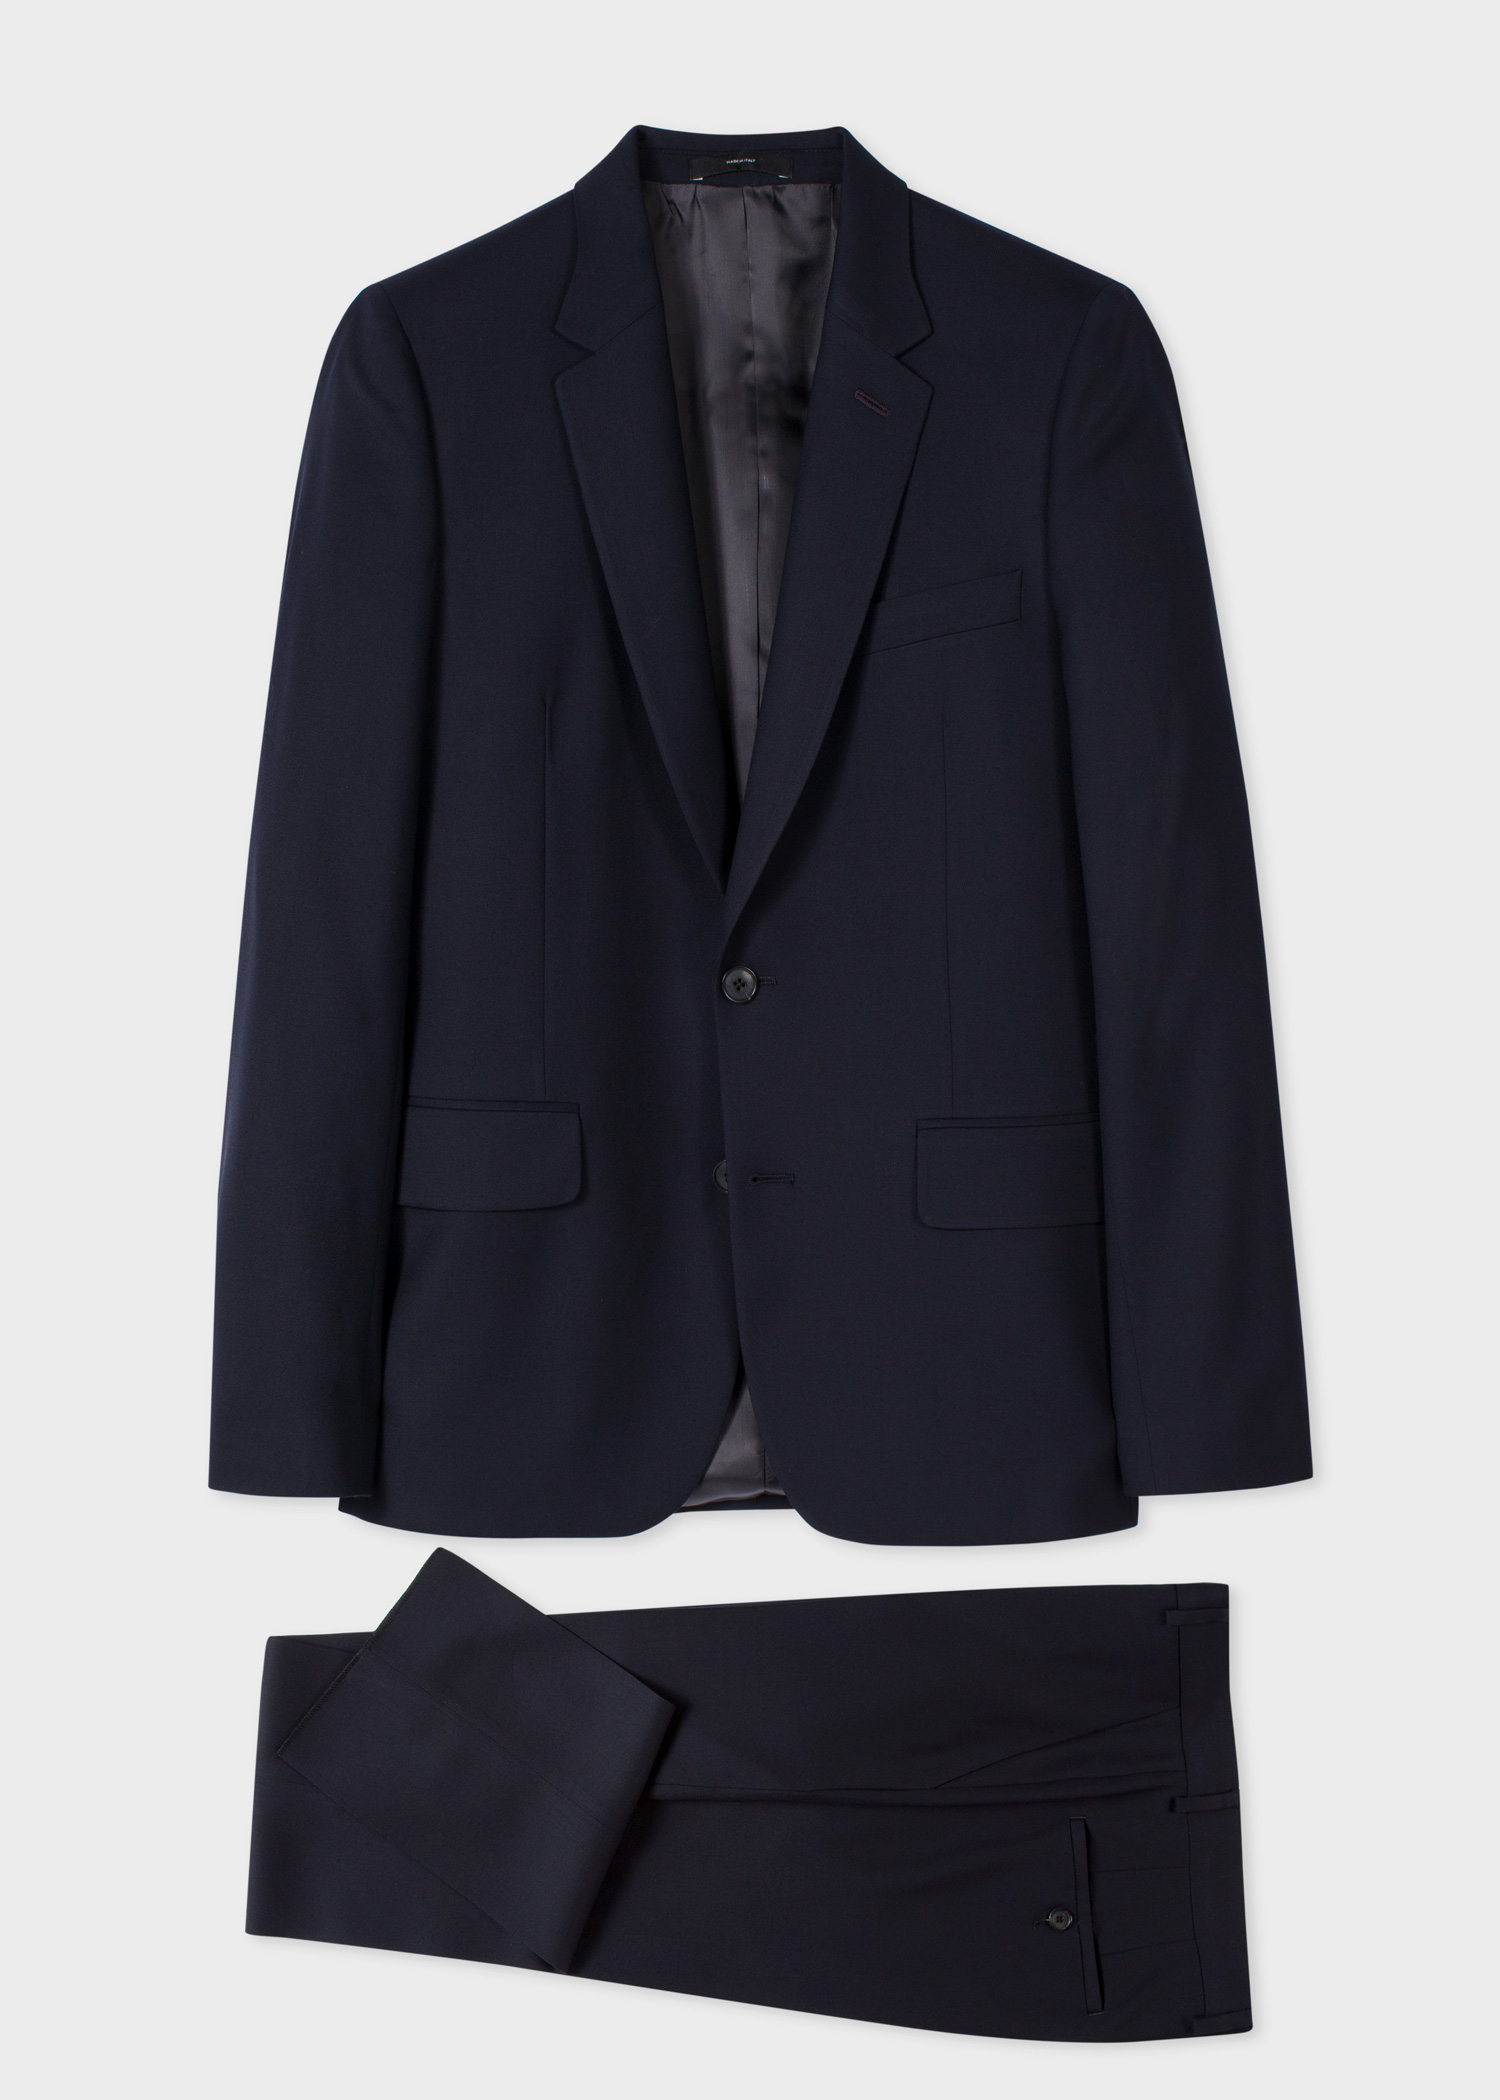 623659f1728 The Soho - Men s Tailored-Fit Navy Wool  A Suit To Travel In  - Paul ...